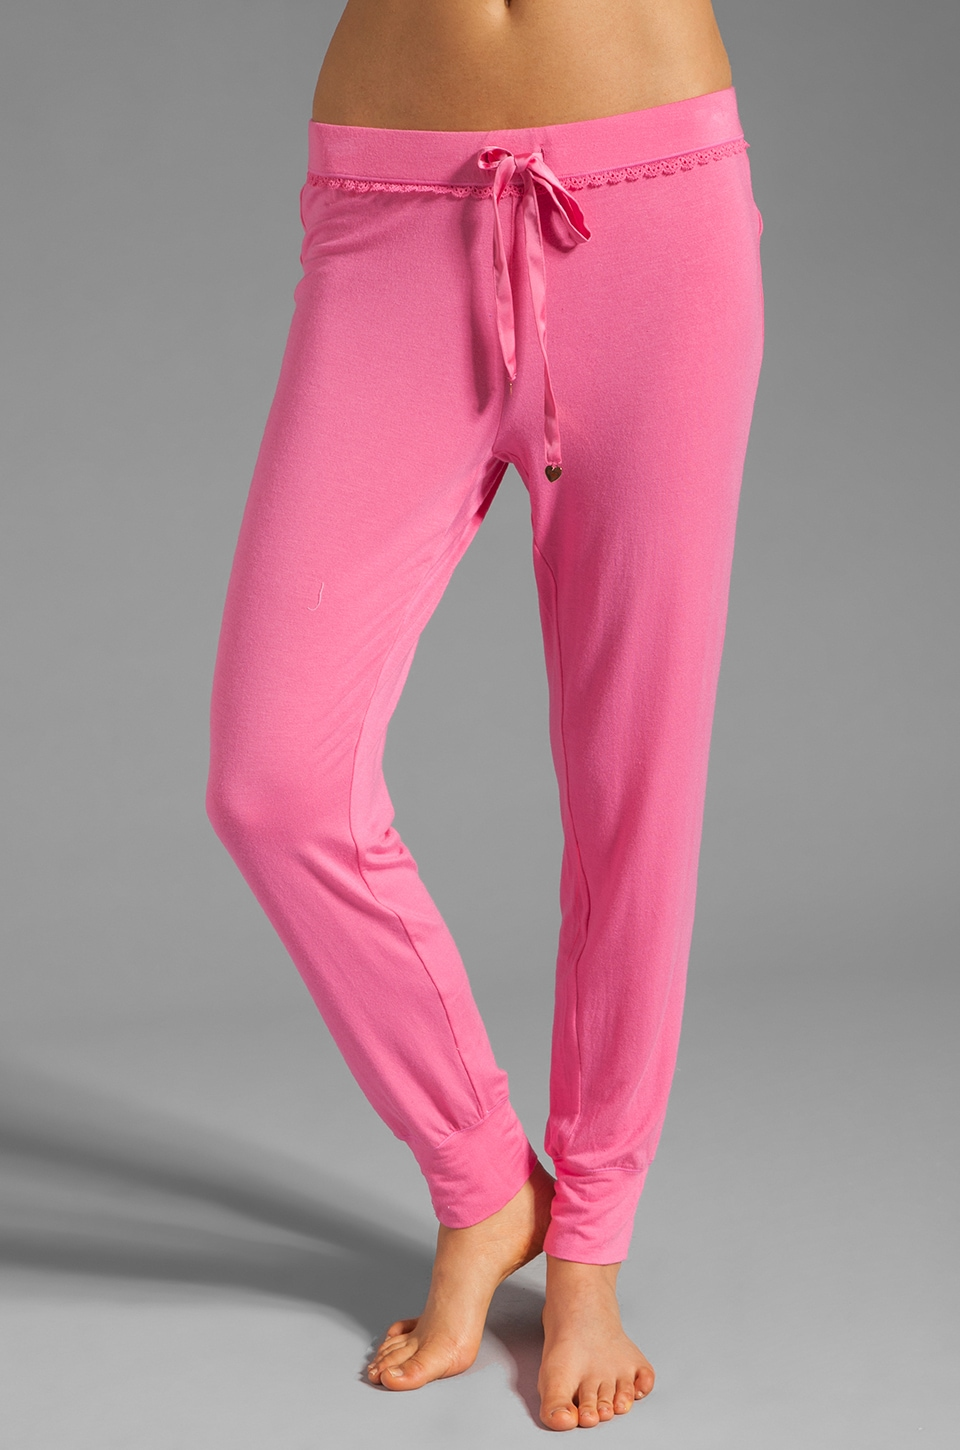 Juicy Couture Slim Leg Pant w/ Lace Detail in Light Helium Pink